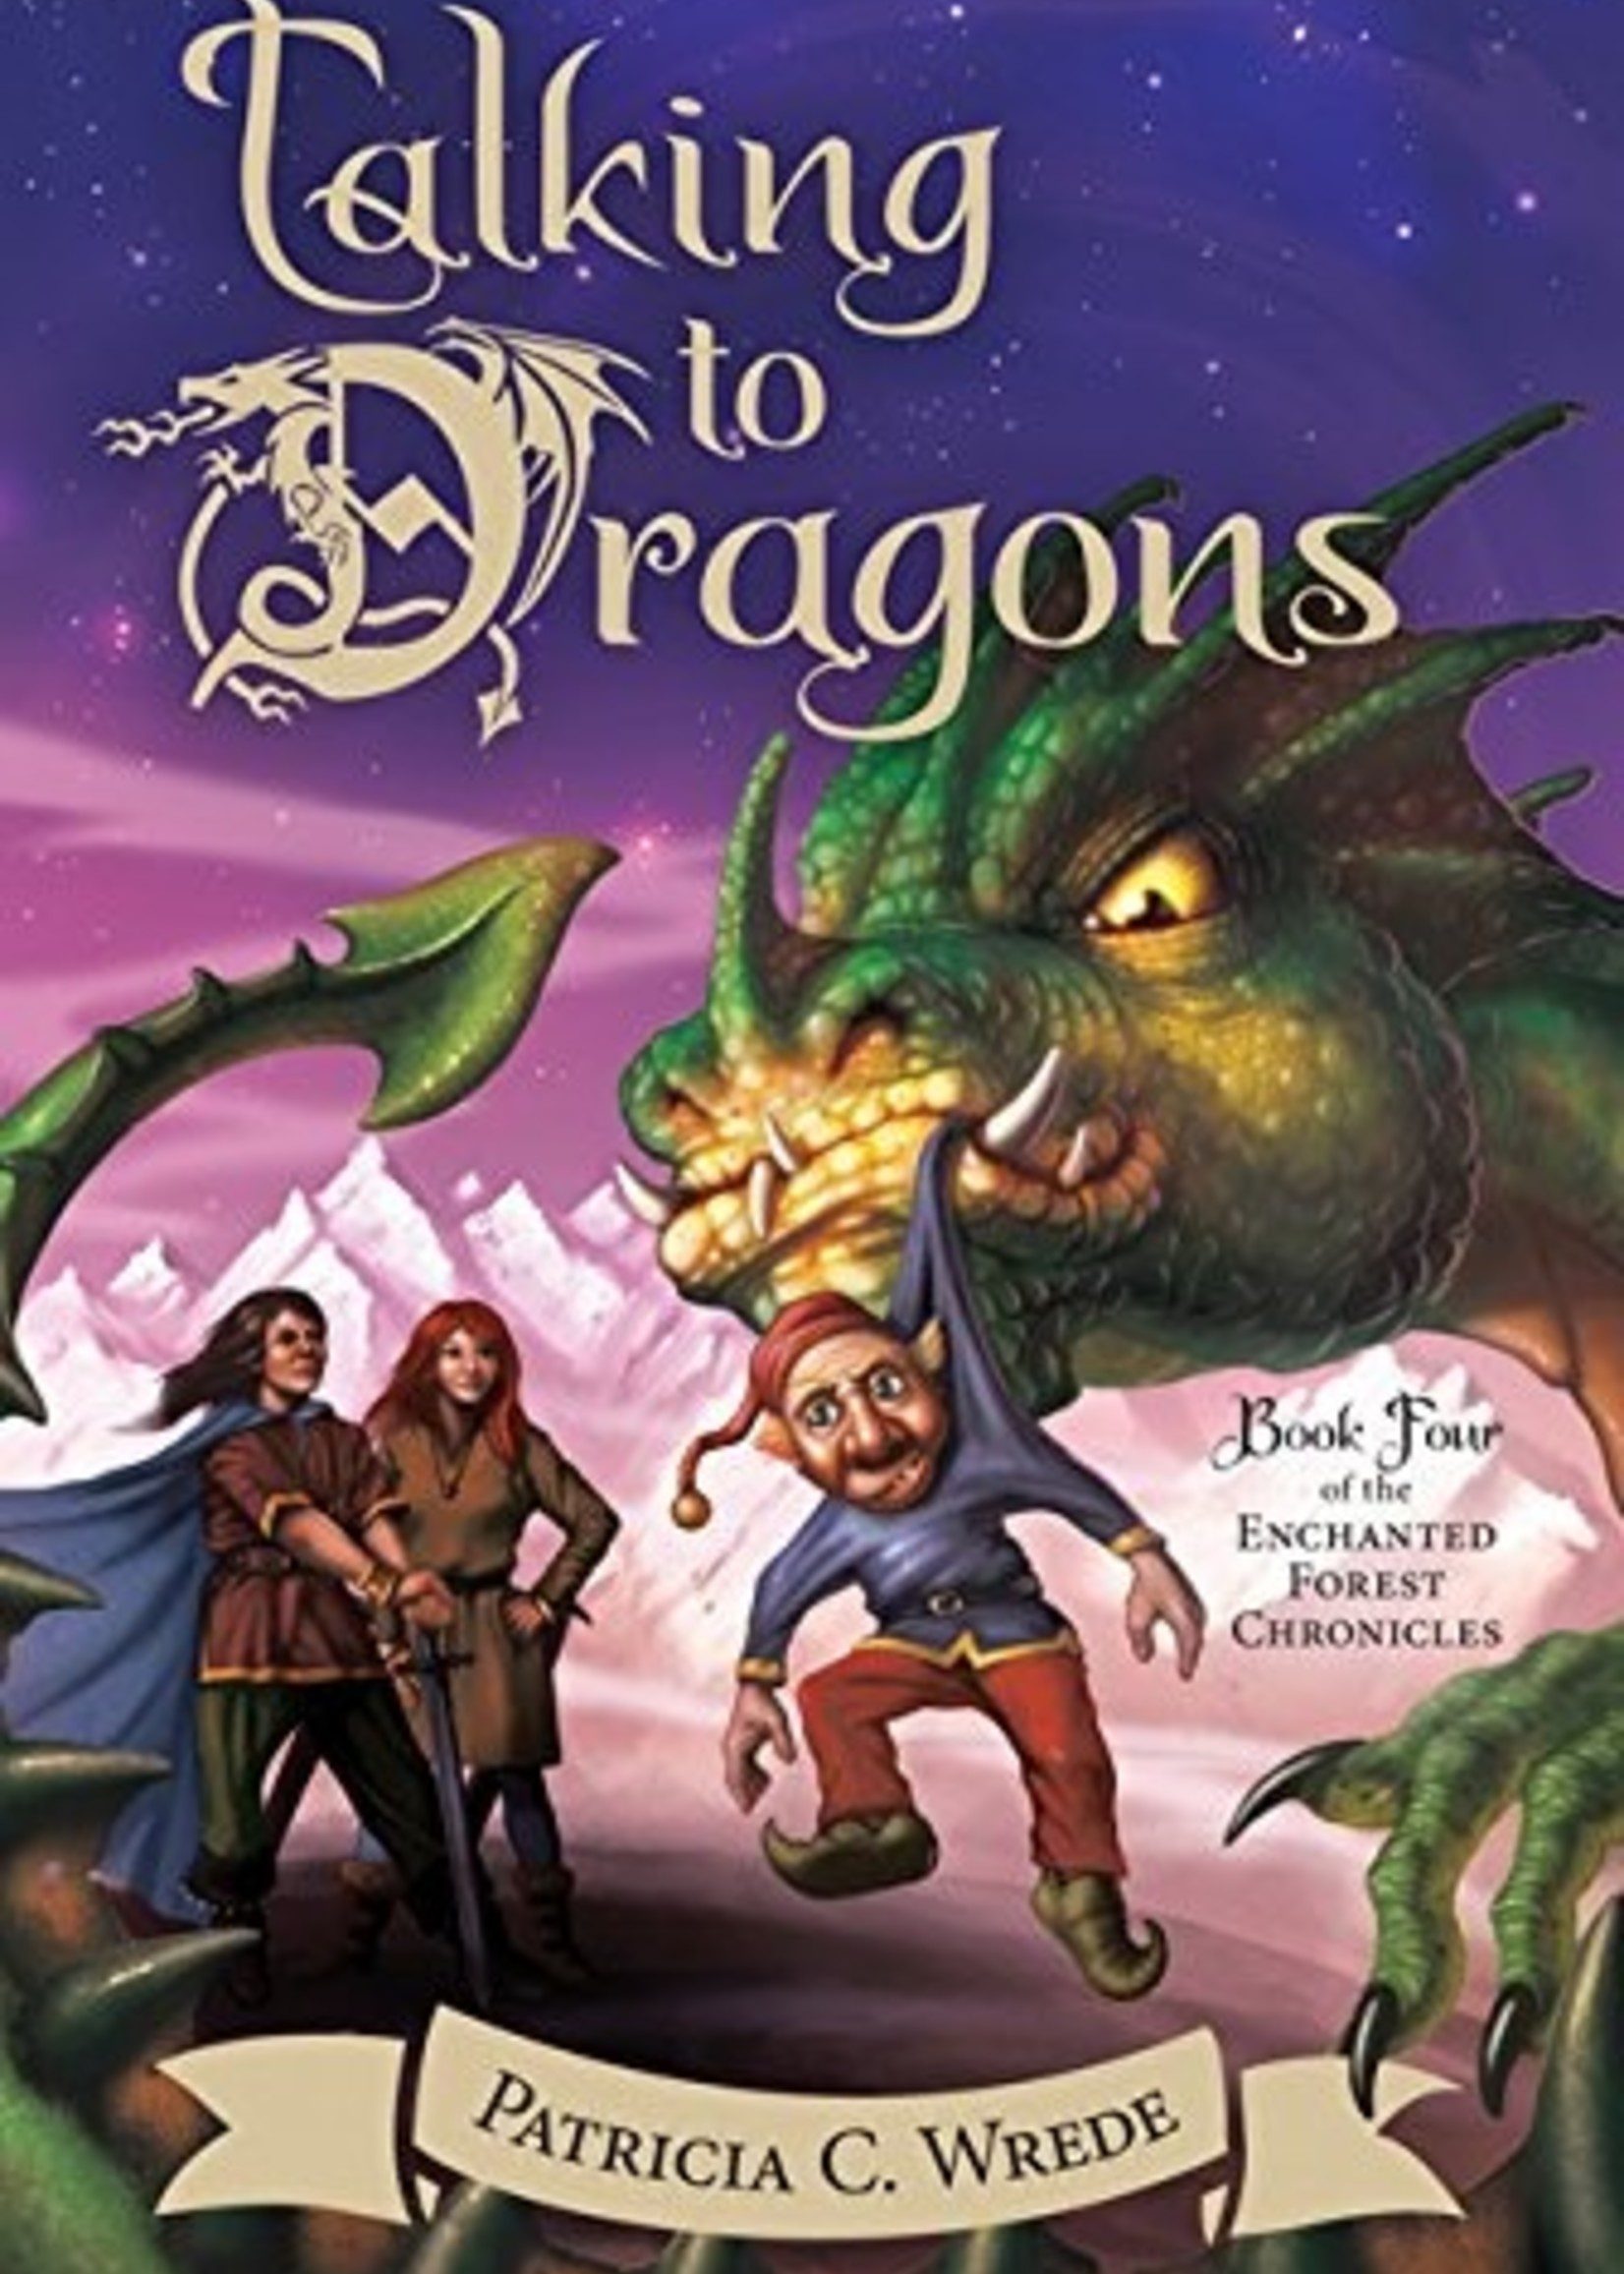 Enchanted Forest Chronicles #04, Talking to Dragons - Paperback